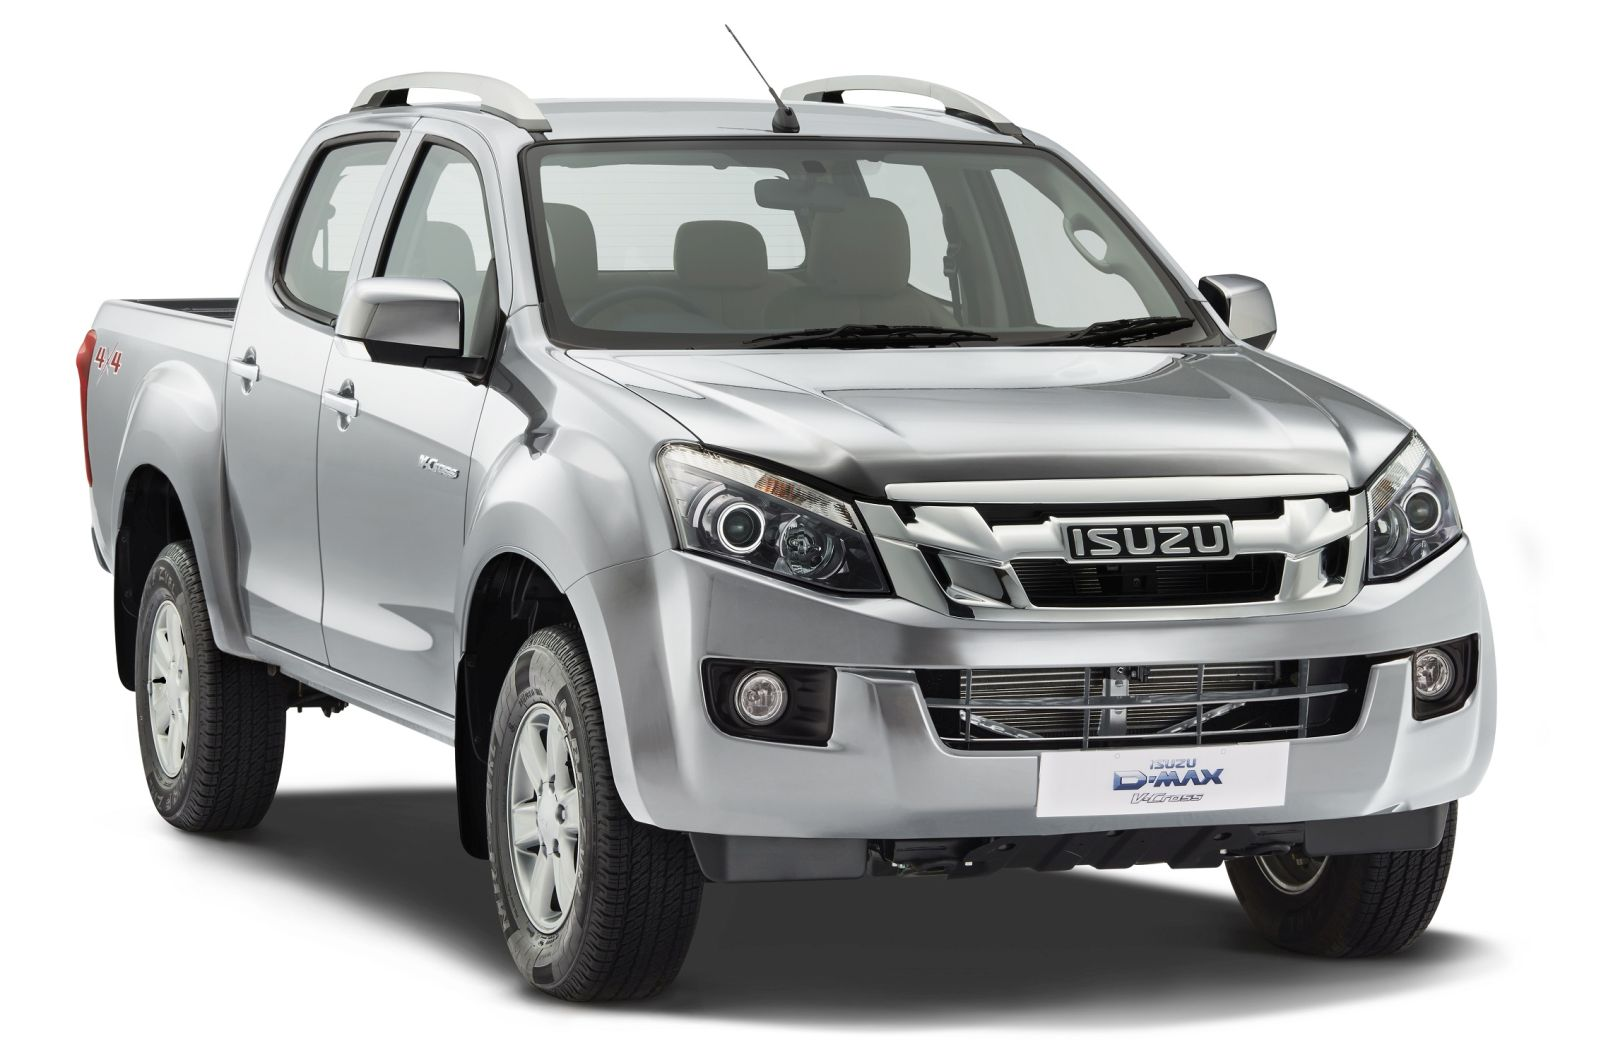 isuzu d max v cross adventure utility vehicle bookings commence launched at an introductory. Black Bedroom Furniture Sets. Home Design Ideas